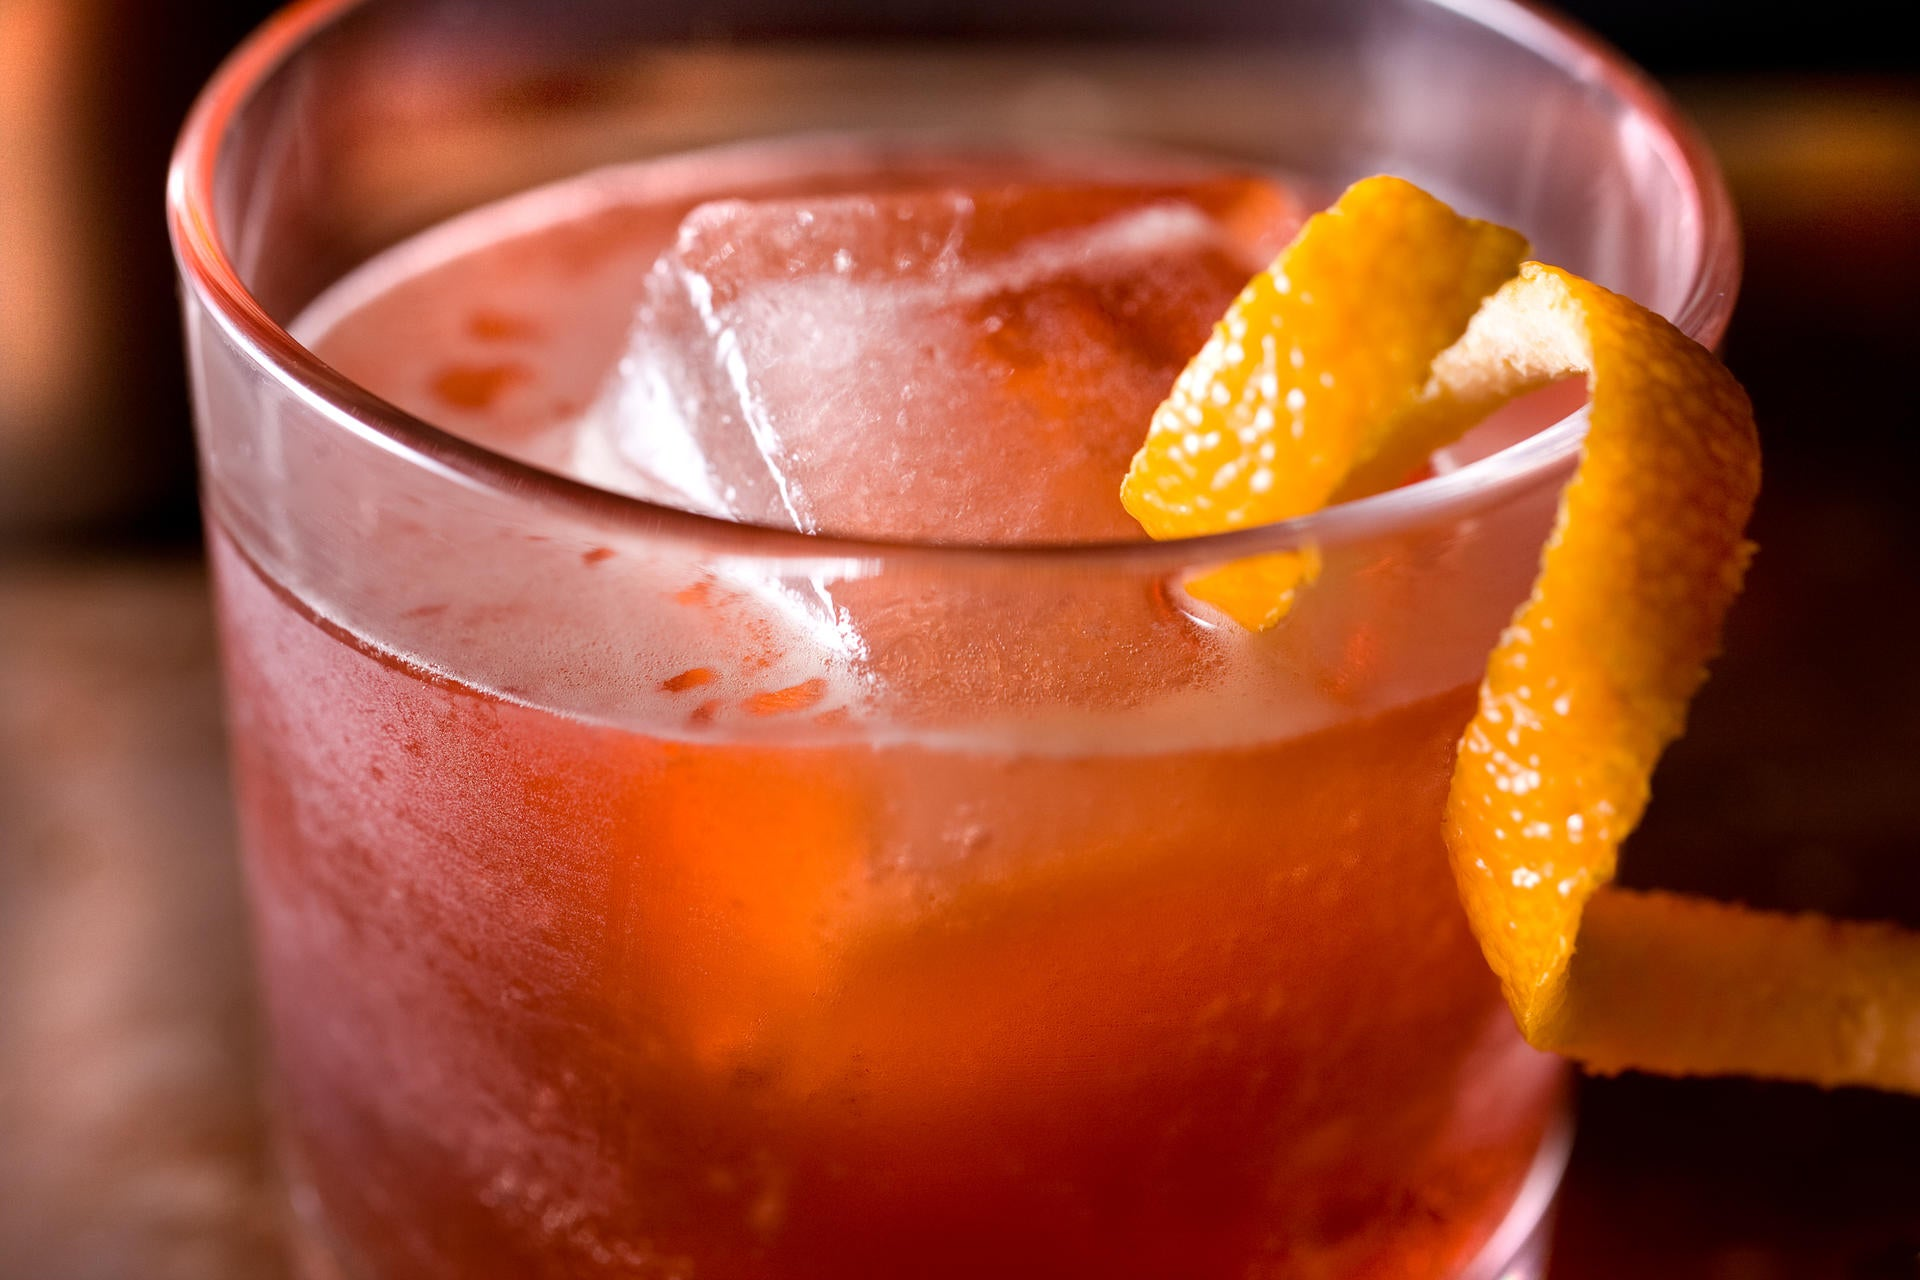 THIRSTY THURSDAY? TIME FOR A NEGRONI...